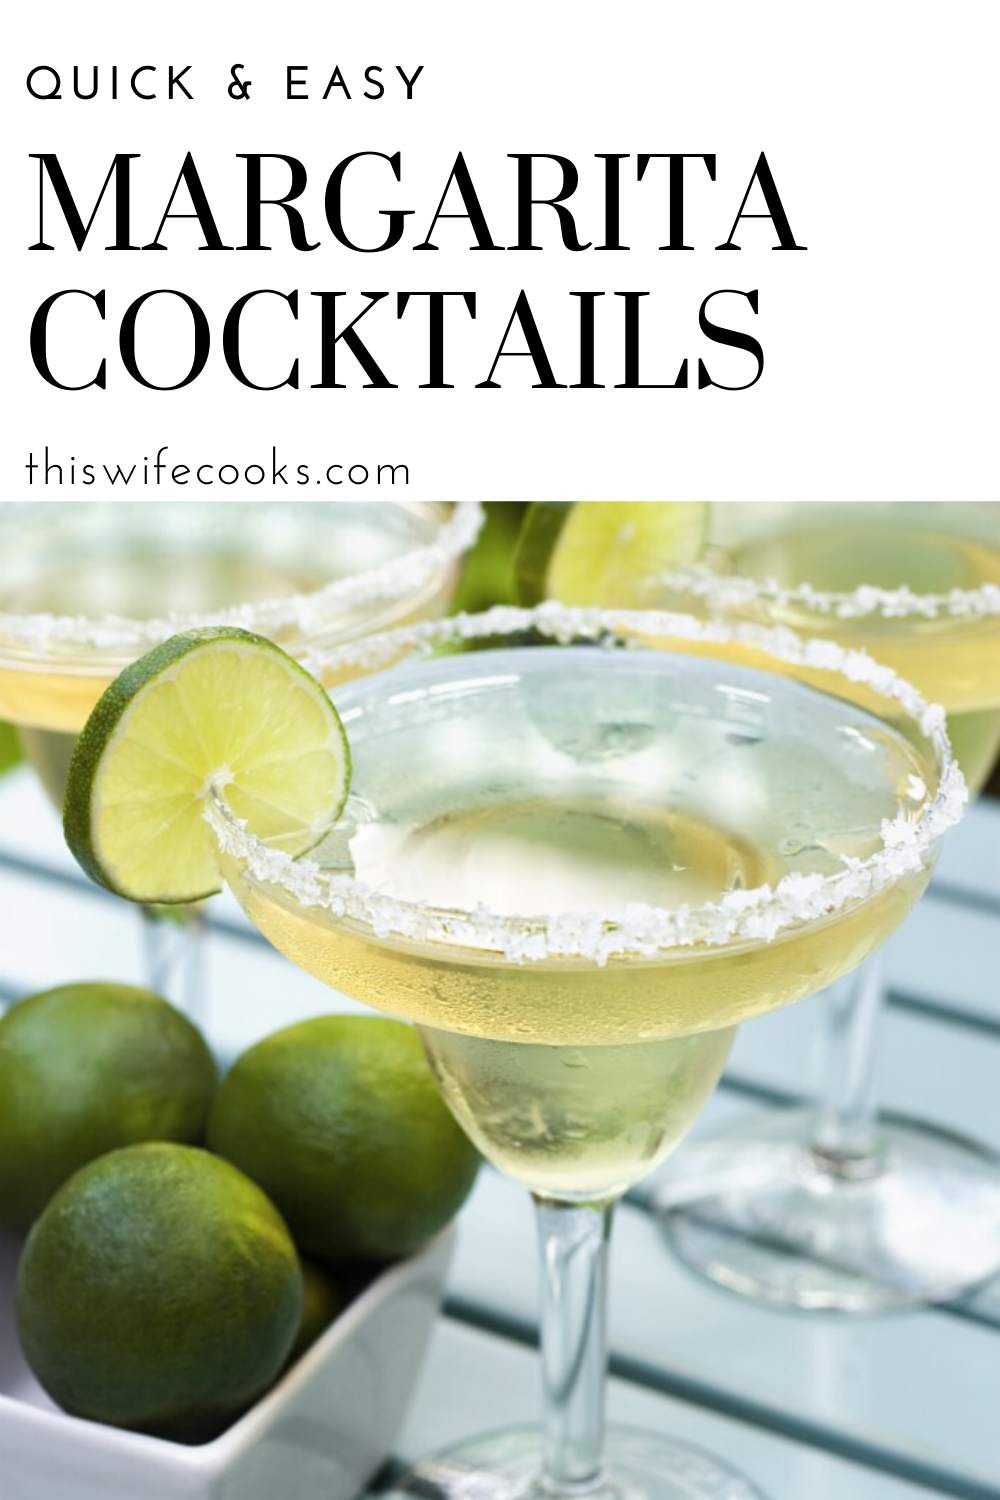 Margarita Cocktails - Is it even Cinco de Mayo without margaritas? Mix up a batch of this crowd-pleaing summertime classic in minutes! via @thiswifecooks